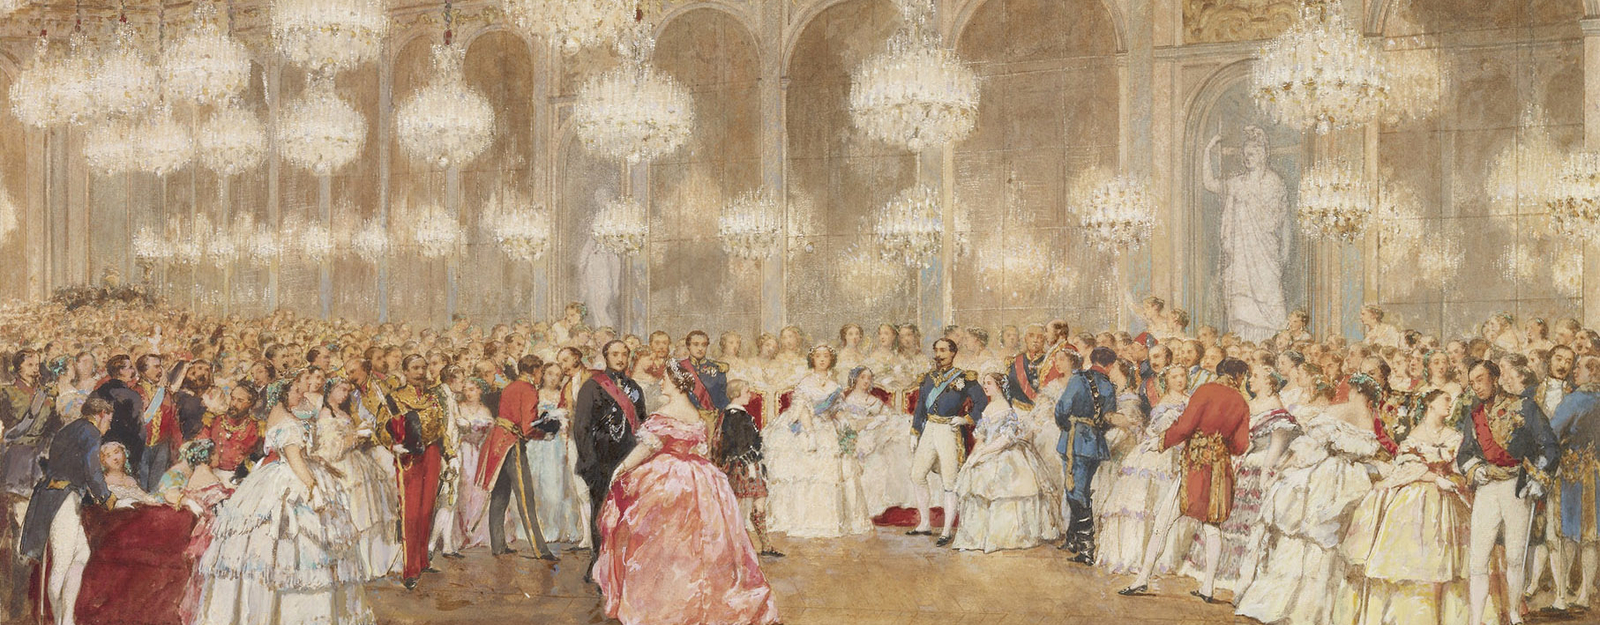 The overture to the ball in the Galerie des Glaces, Versailles